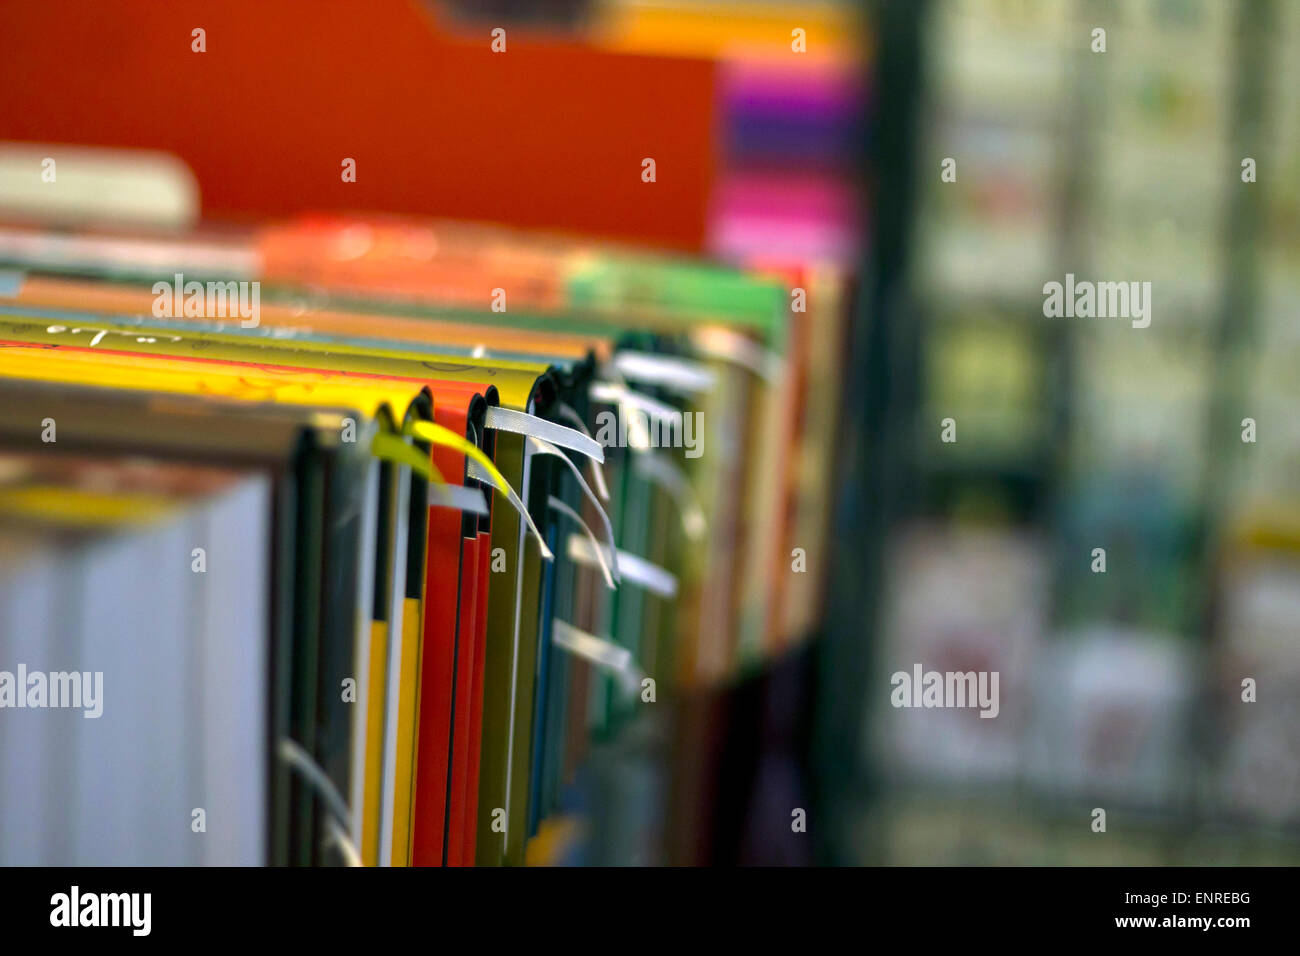 Bookshelf and book row in a book shop and library - Stock Image